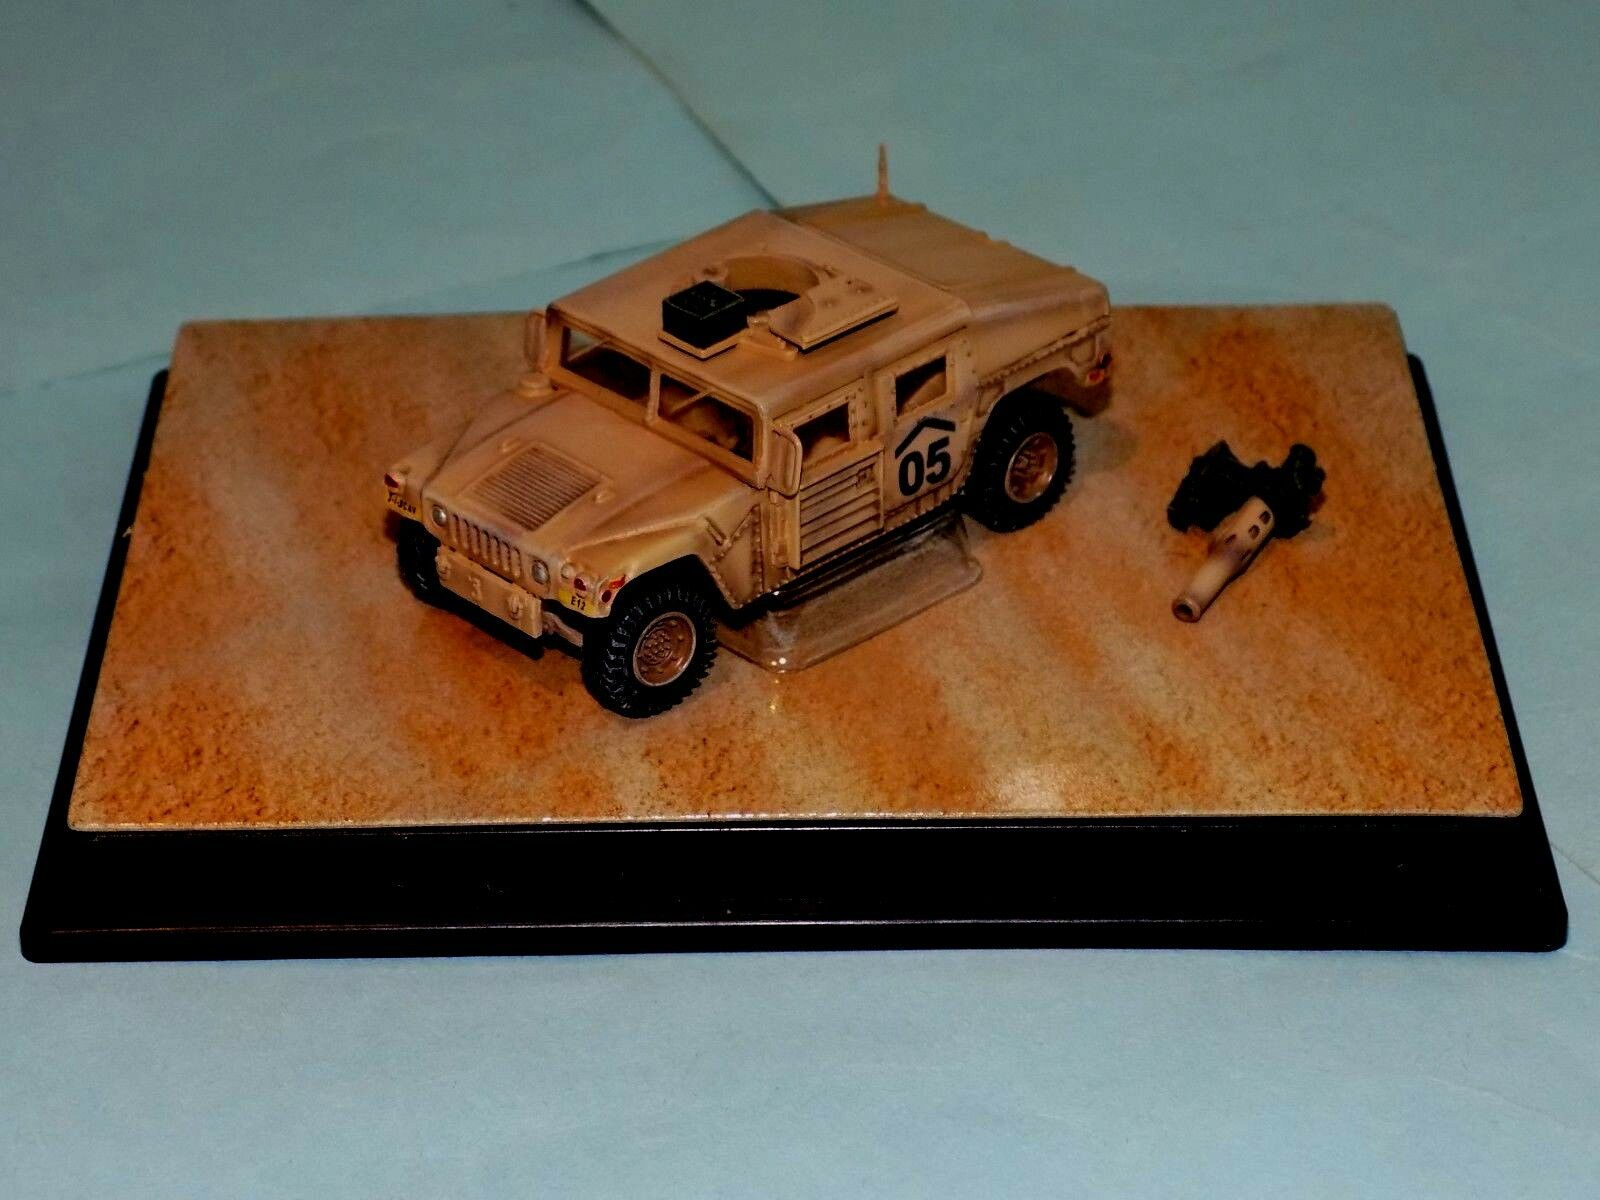 HMMWV Hummer US Army, Iraq, Operation Iraqi Freedom 2003 DRAGON ARMOR 60067 1 72